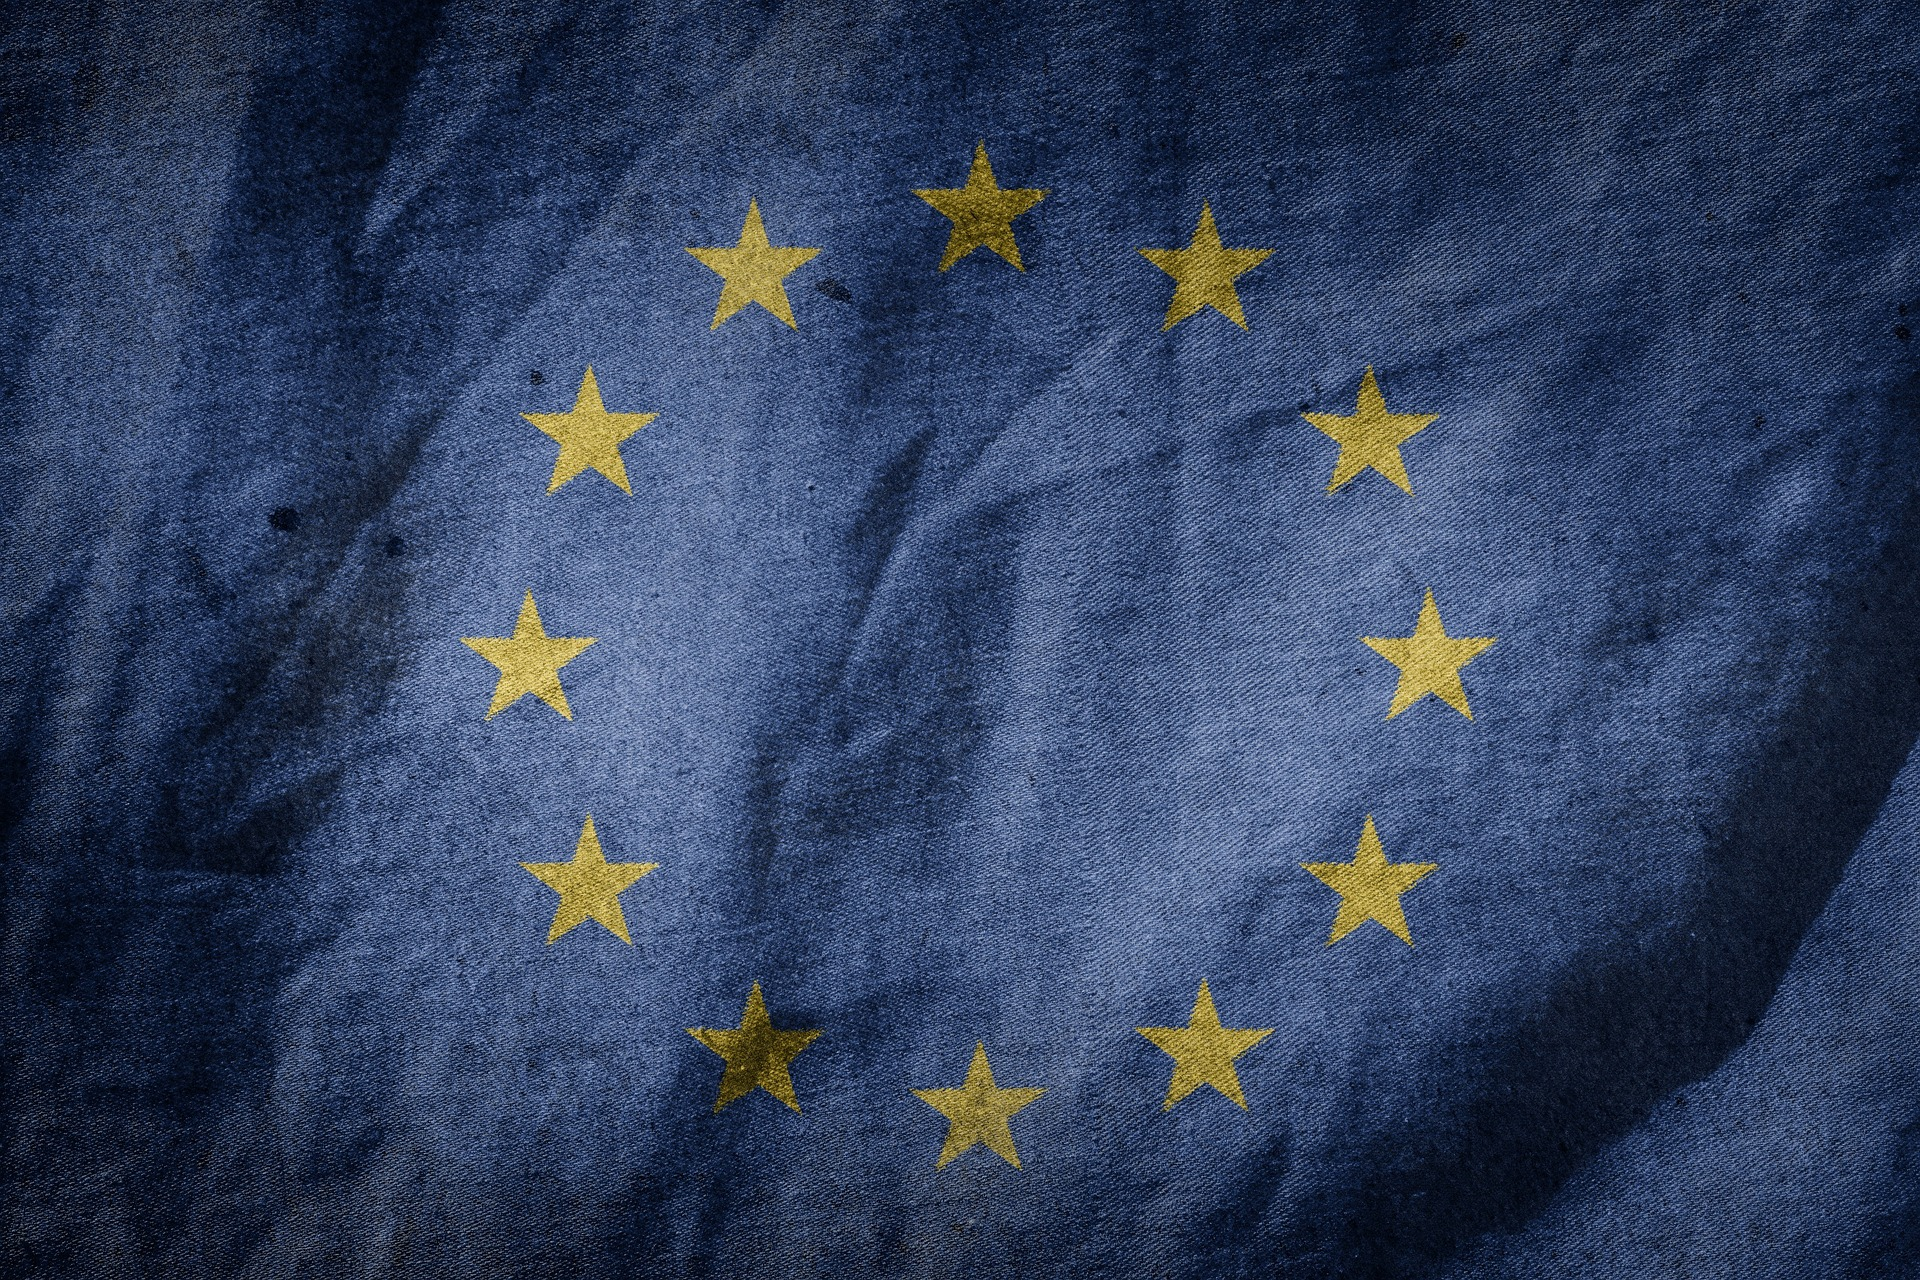 A close up of the European Union Flag